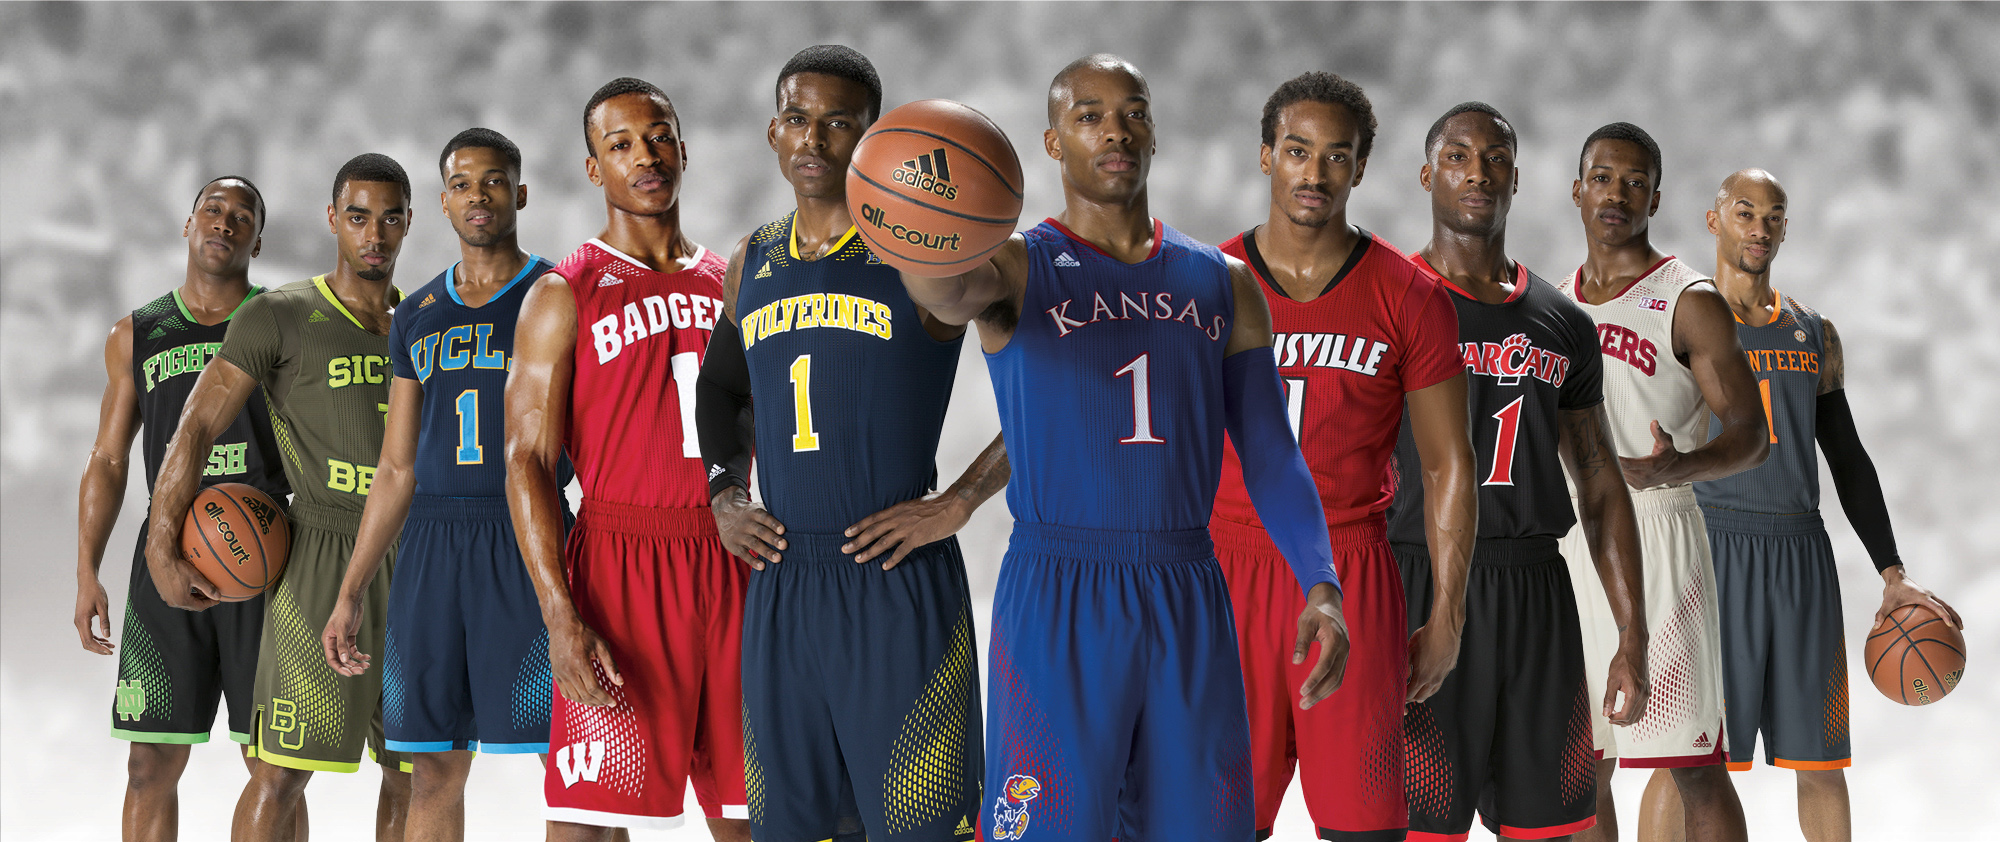 361d1405525f adidas today unveiled the Made in March Uniform System for the 2014 NCAA  basketball ...